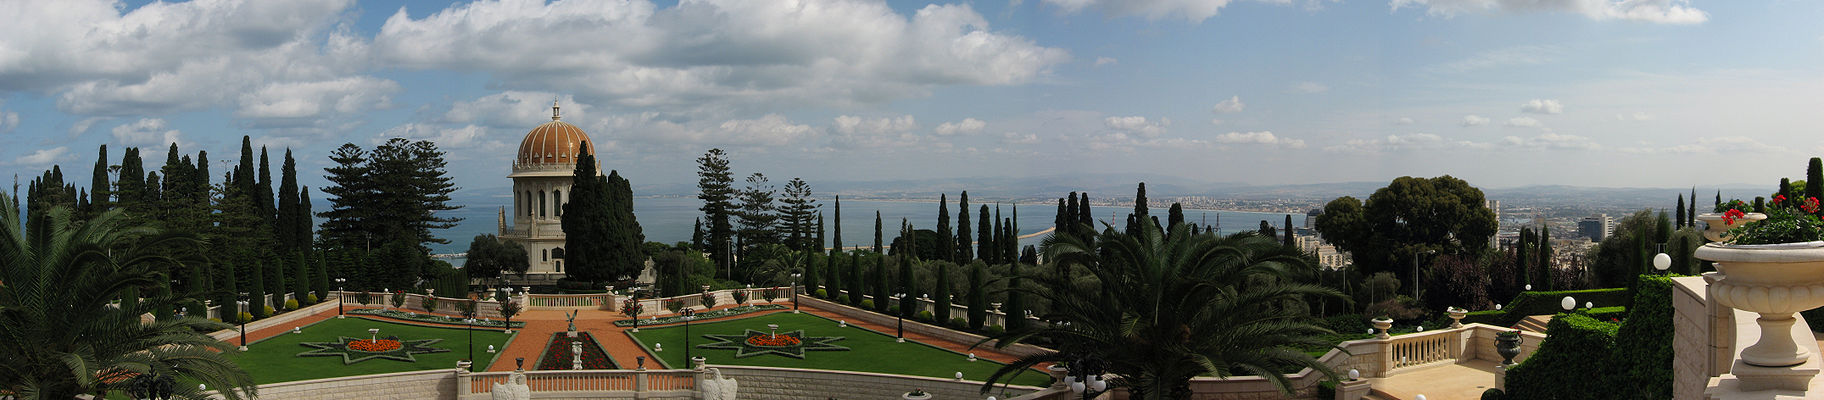 A panoramic view of the Shrine of the Báb and the Bahai gardens.